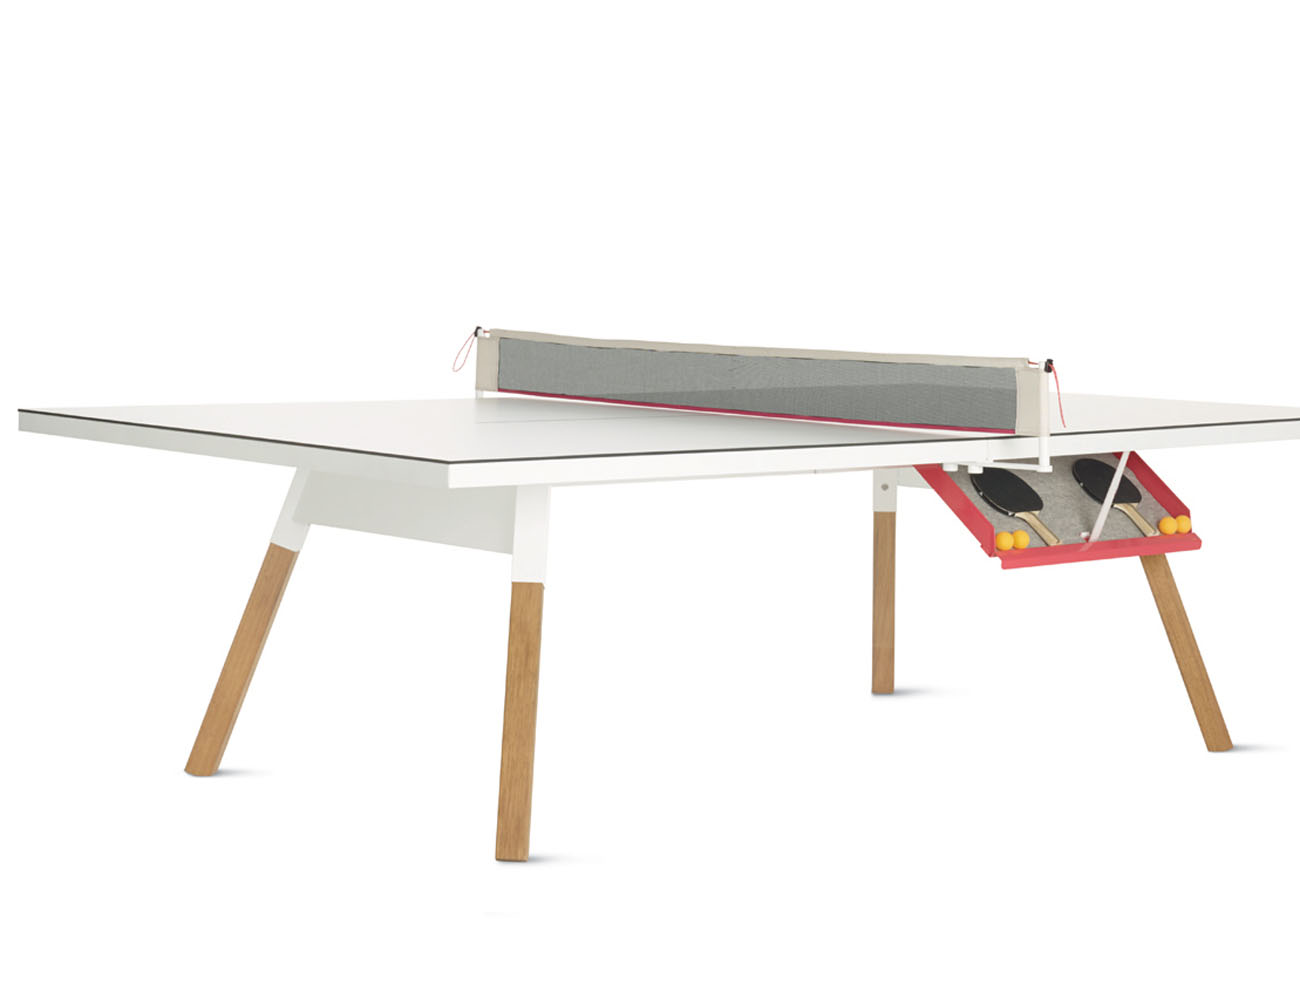 ... You And Me Ping Pong Table U2013 Works As A Dining Table Too